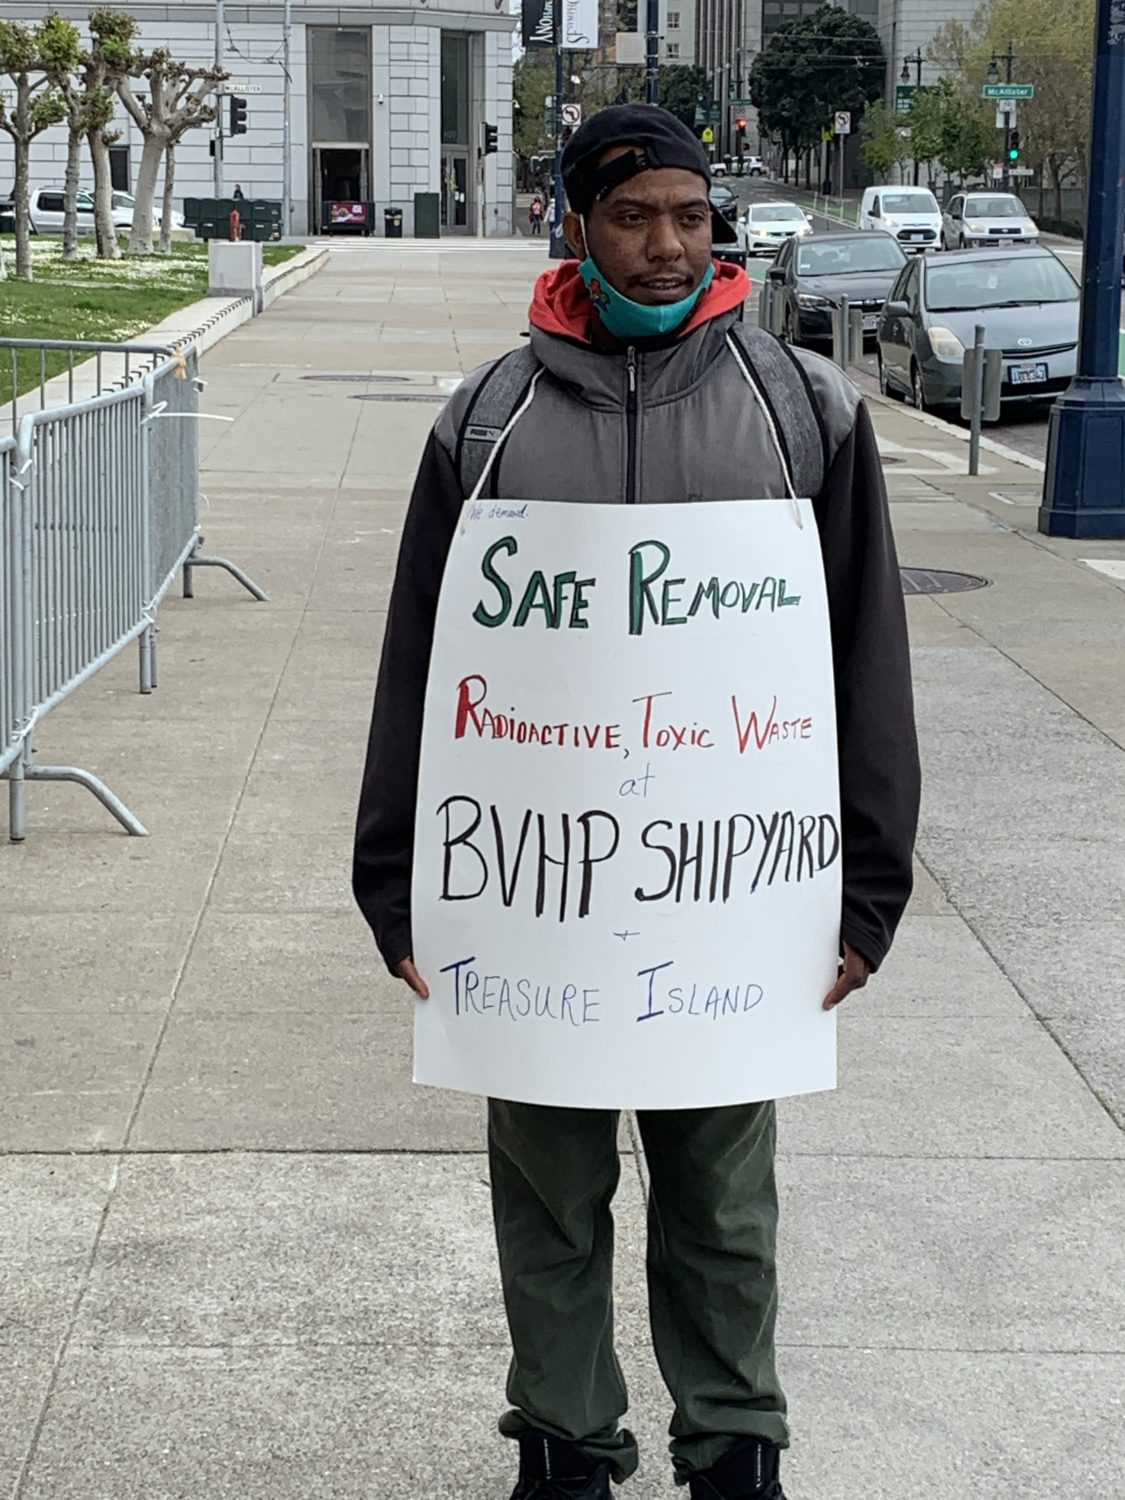 Dominique-wears-sign-'Safe-removal-radioactive-toxic-waste-BVHP-Shipyard-Treasure-Island-Earth-Day-Rally-City-Hall-042221, Earth Day 2021 in San Francisco!, Local News & Views